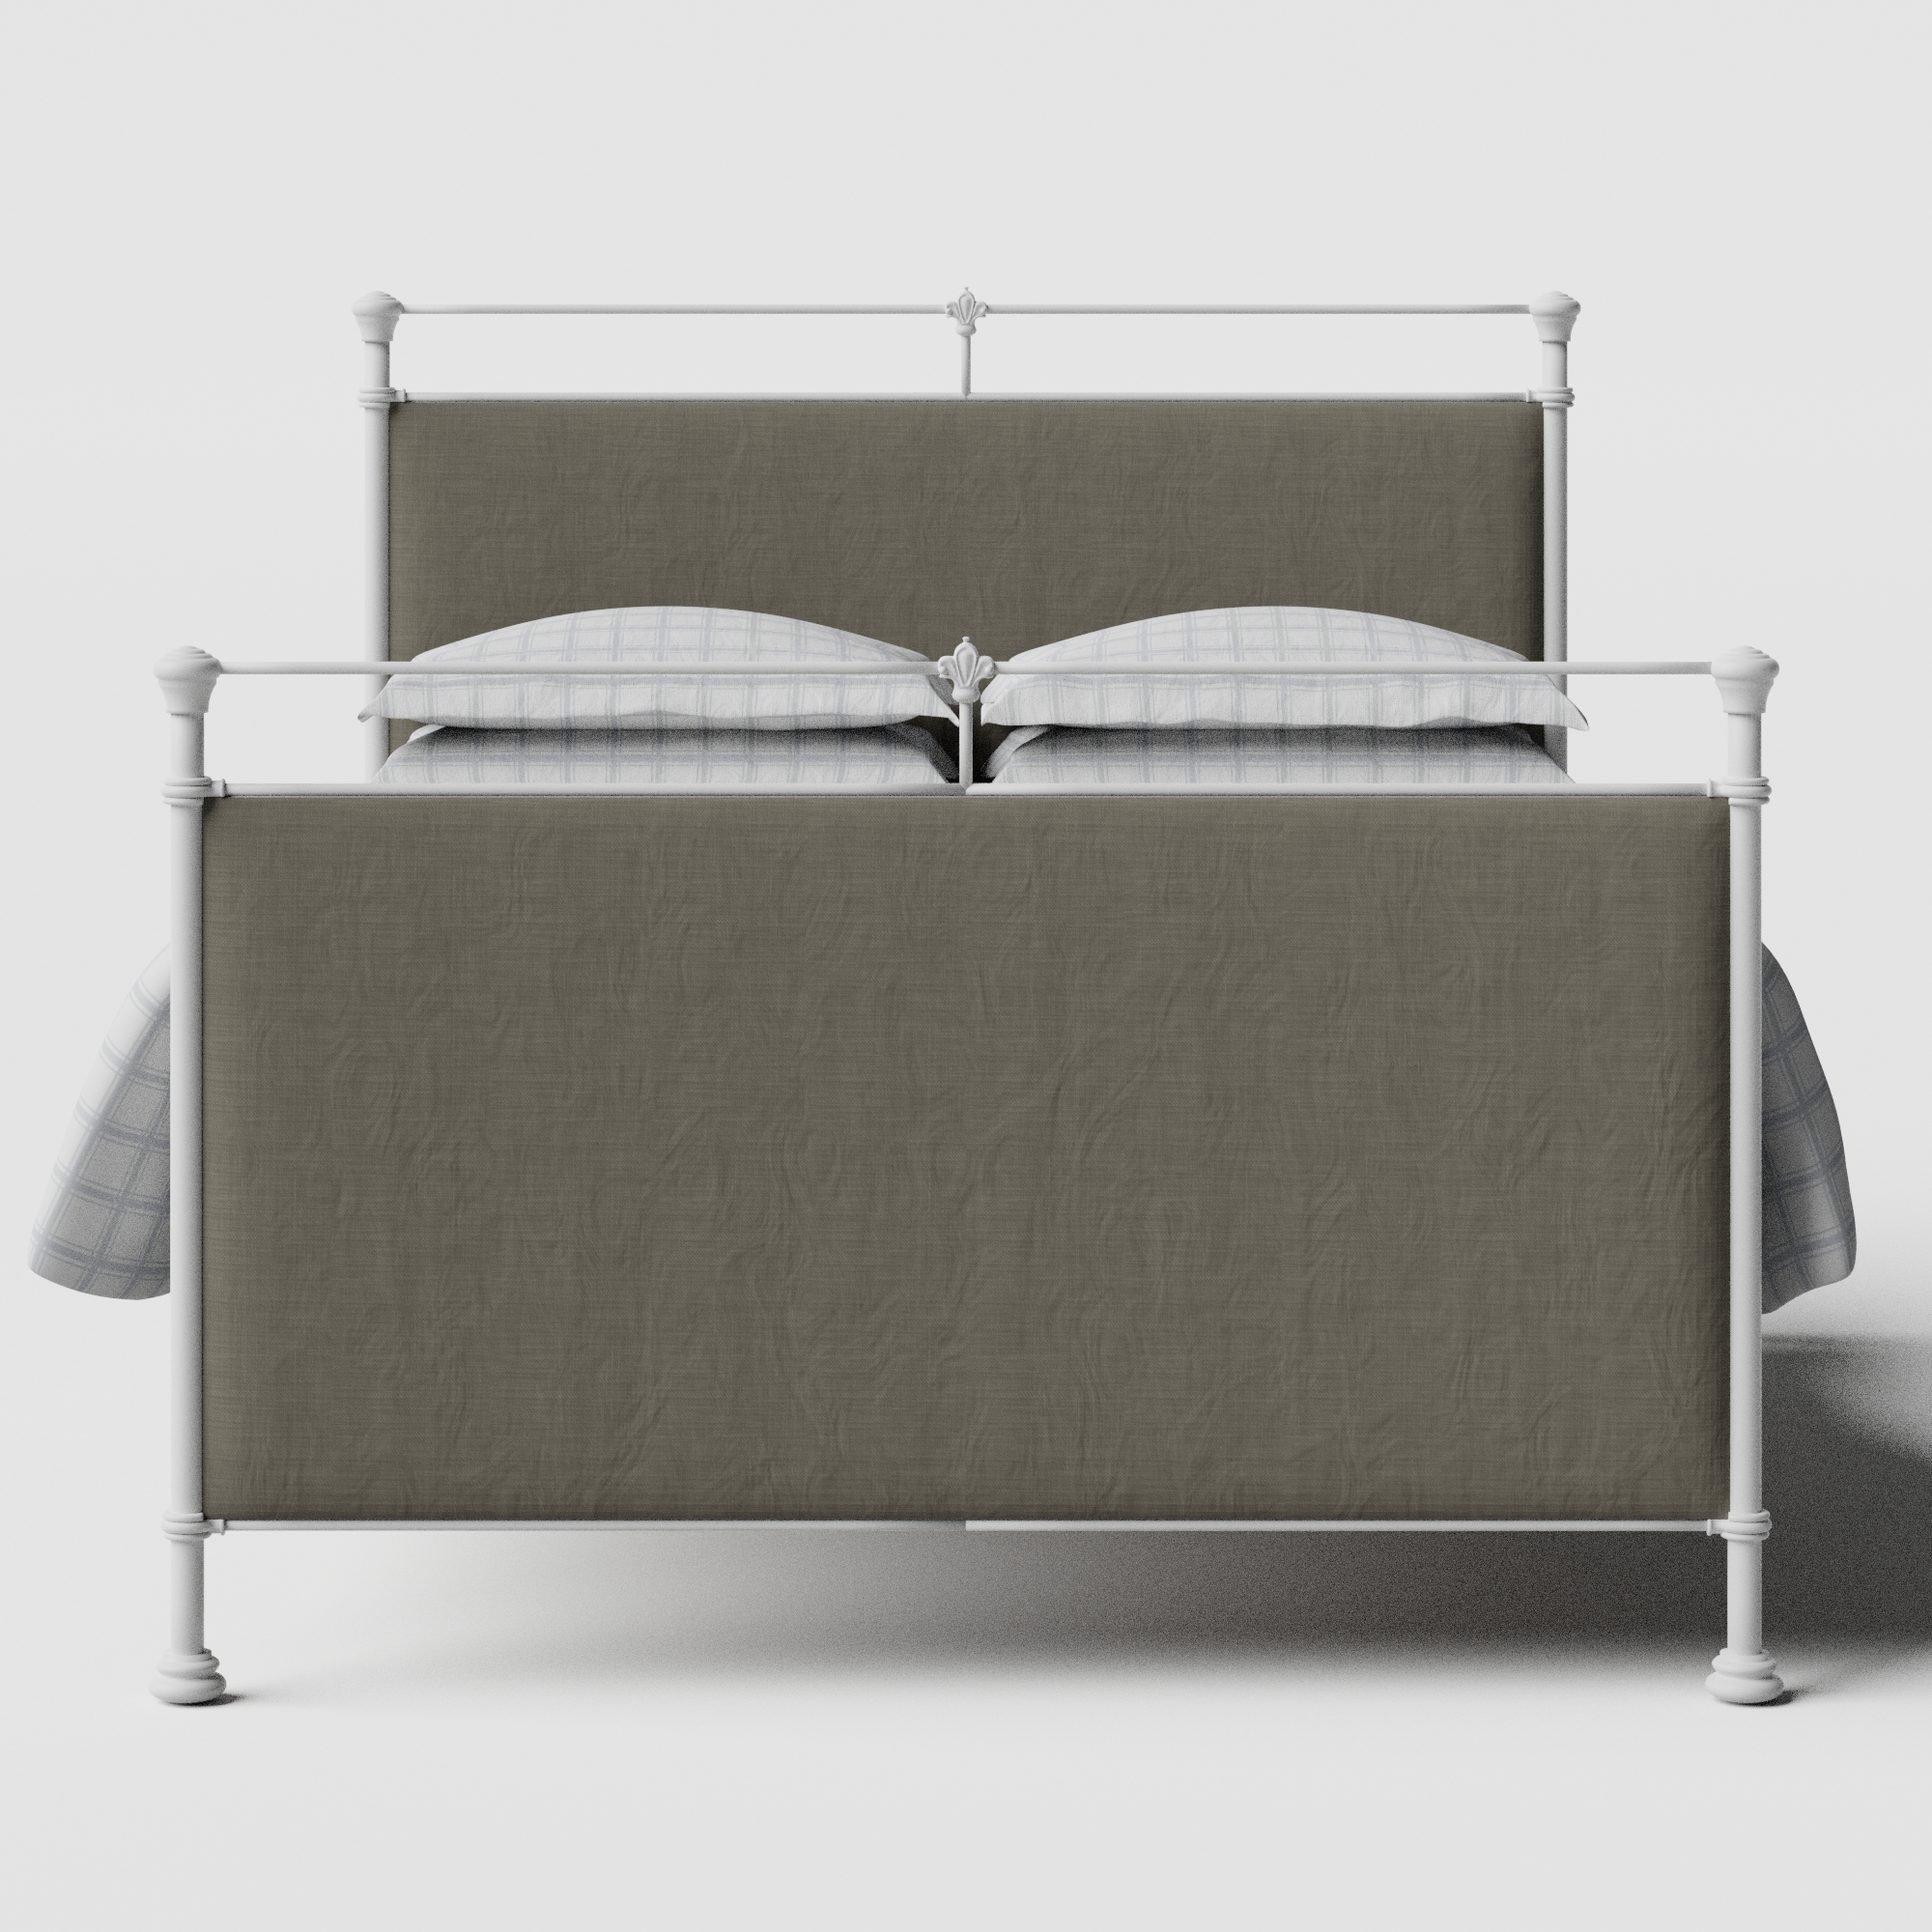 Lille iron/metal upholstered bed in white with grey fabric